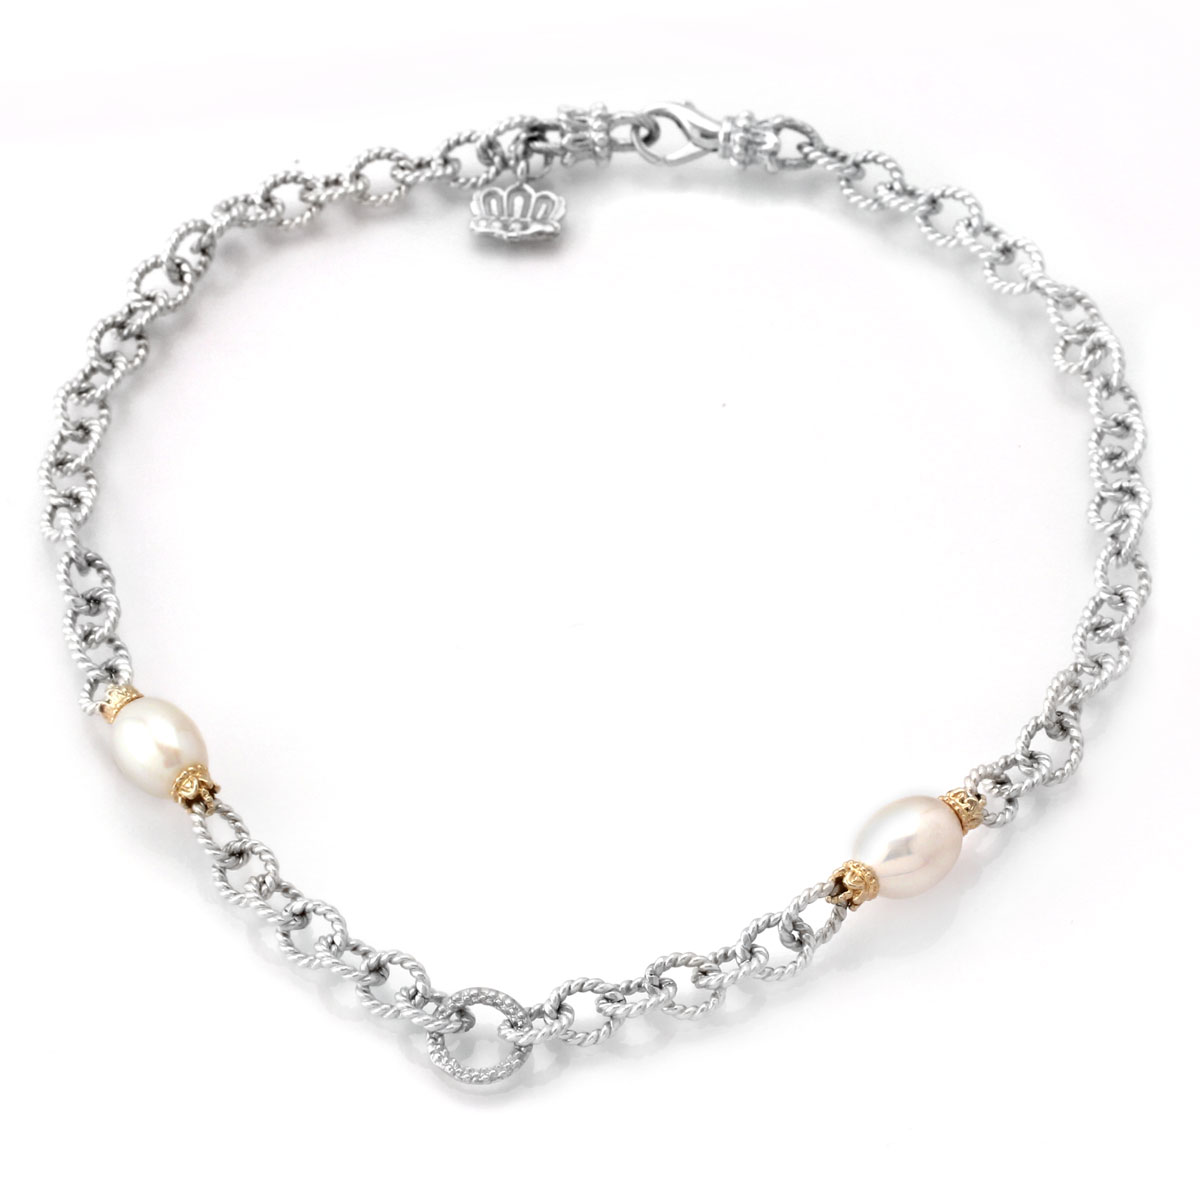 341282-Vahan White Pearl Necklace